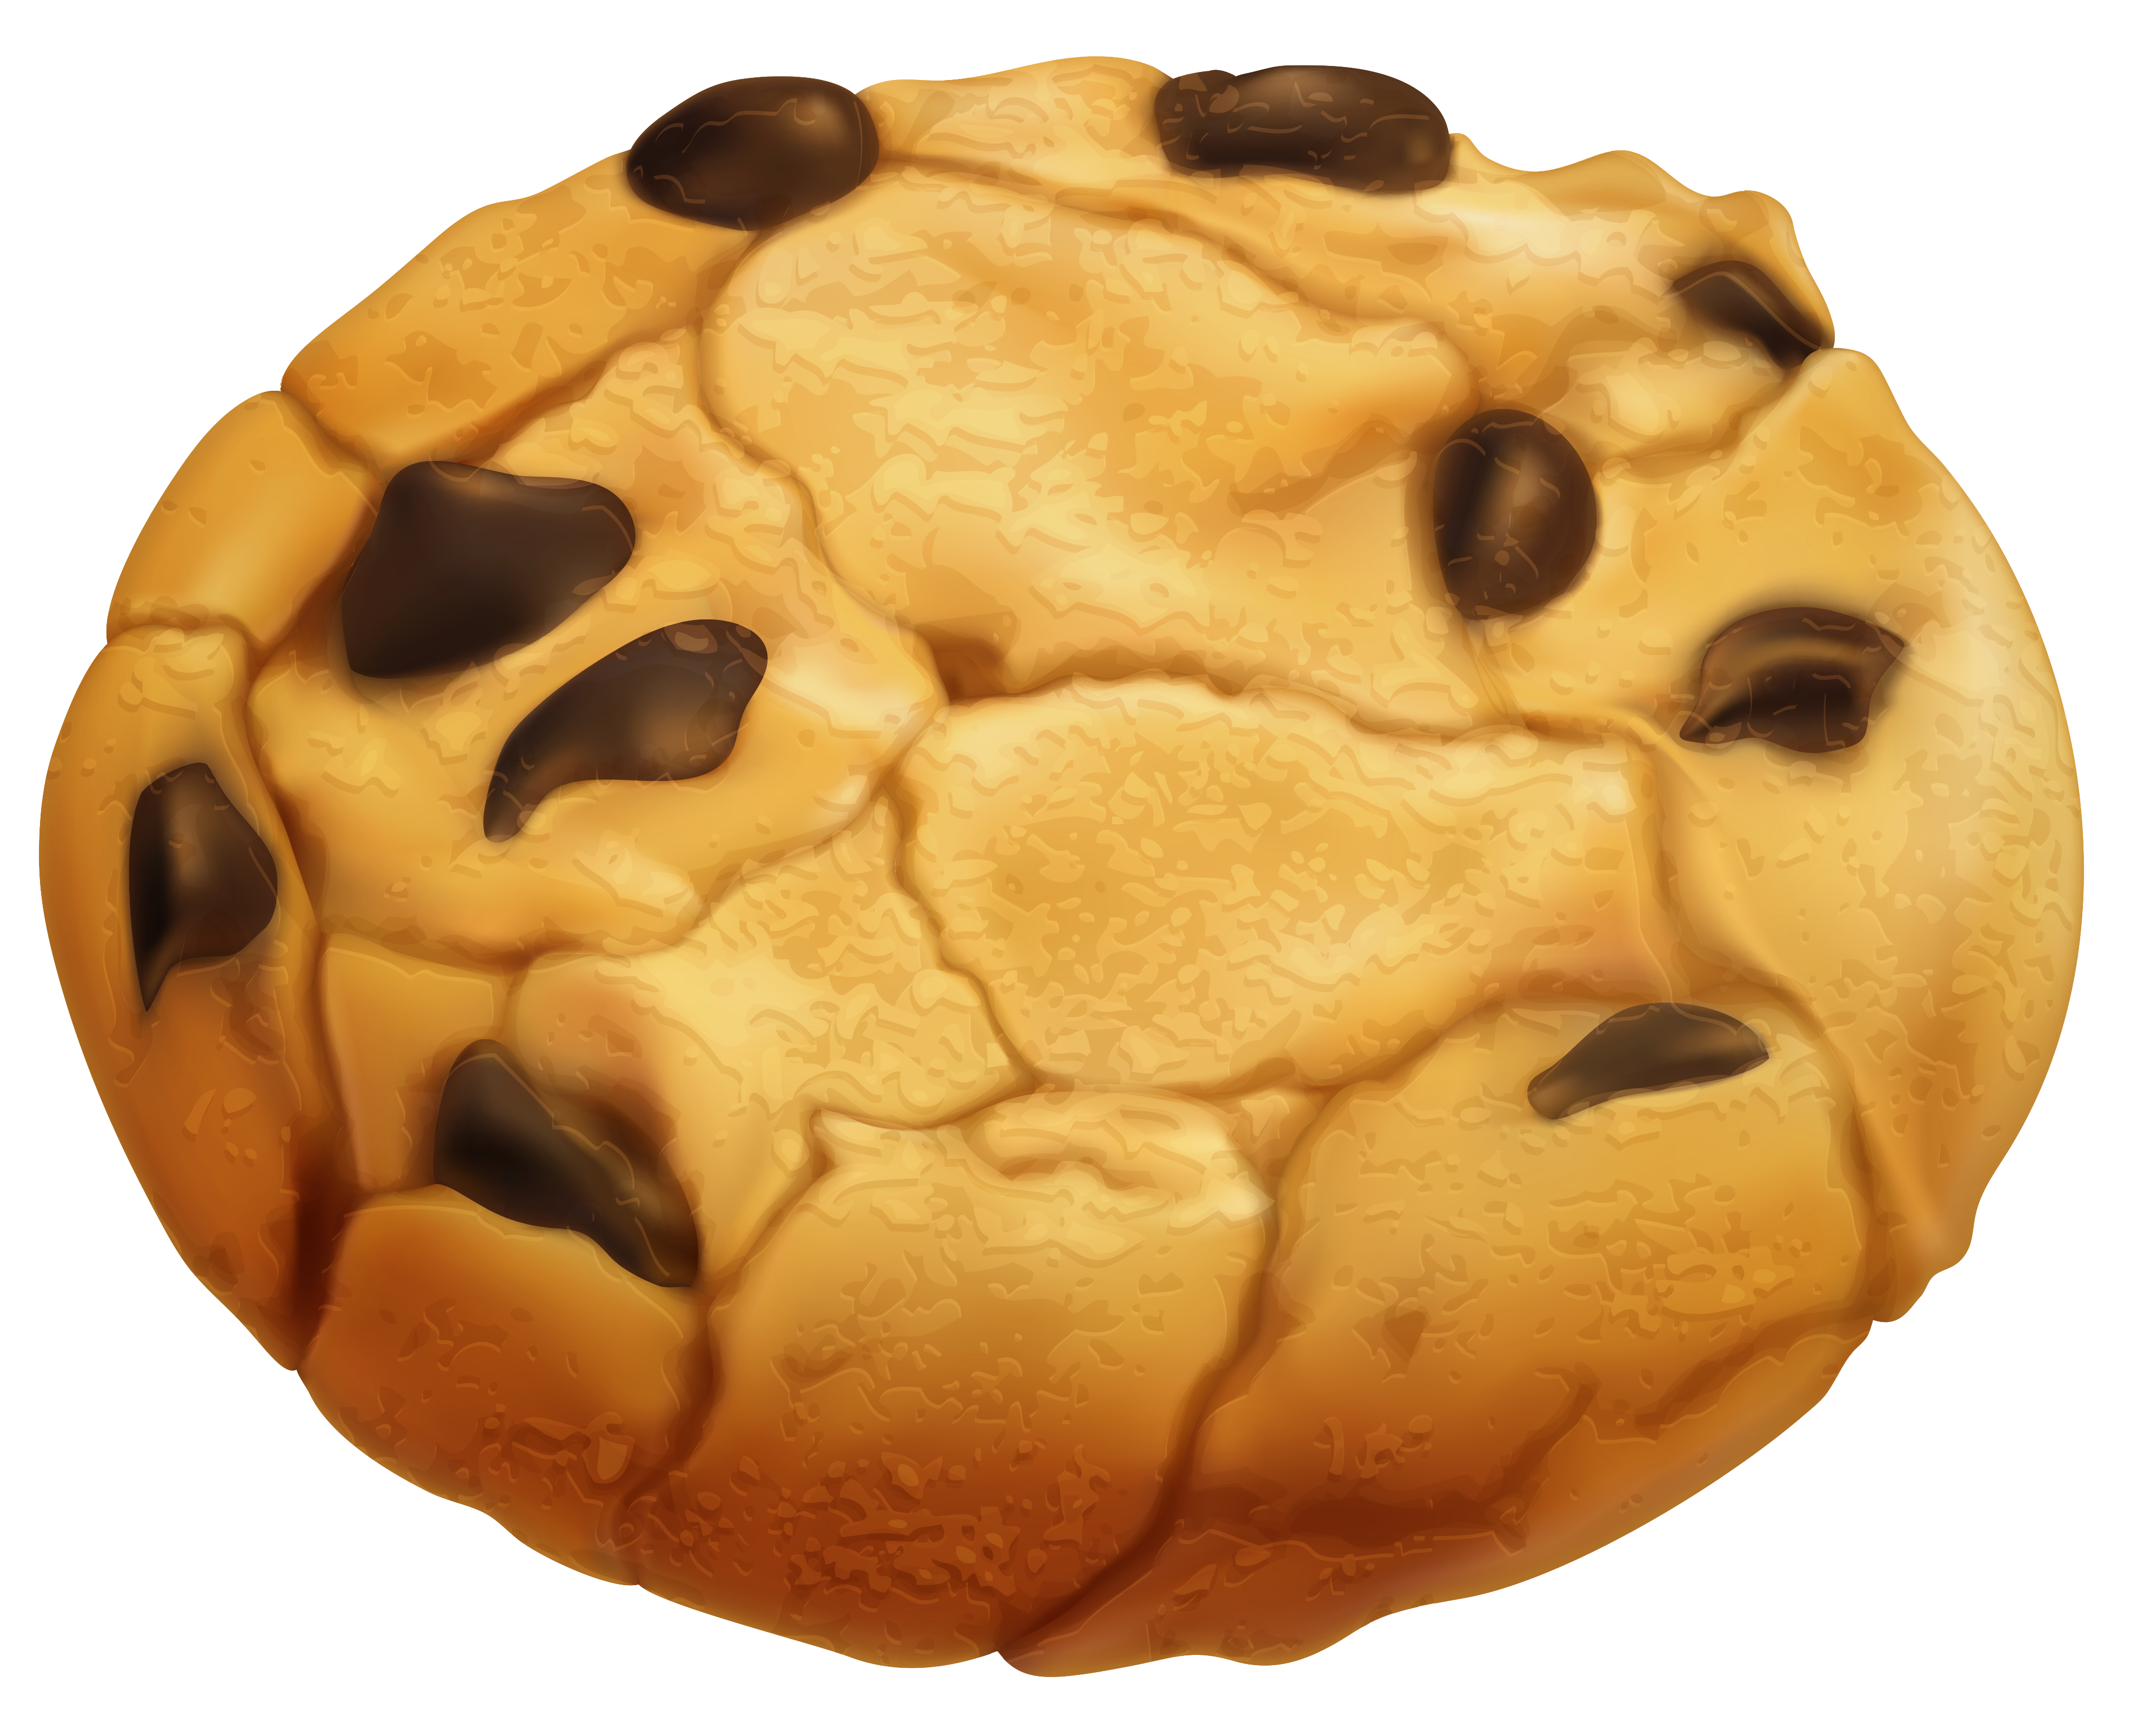 Cookie clipart #4, Download drawings